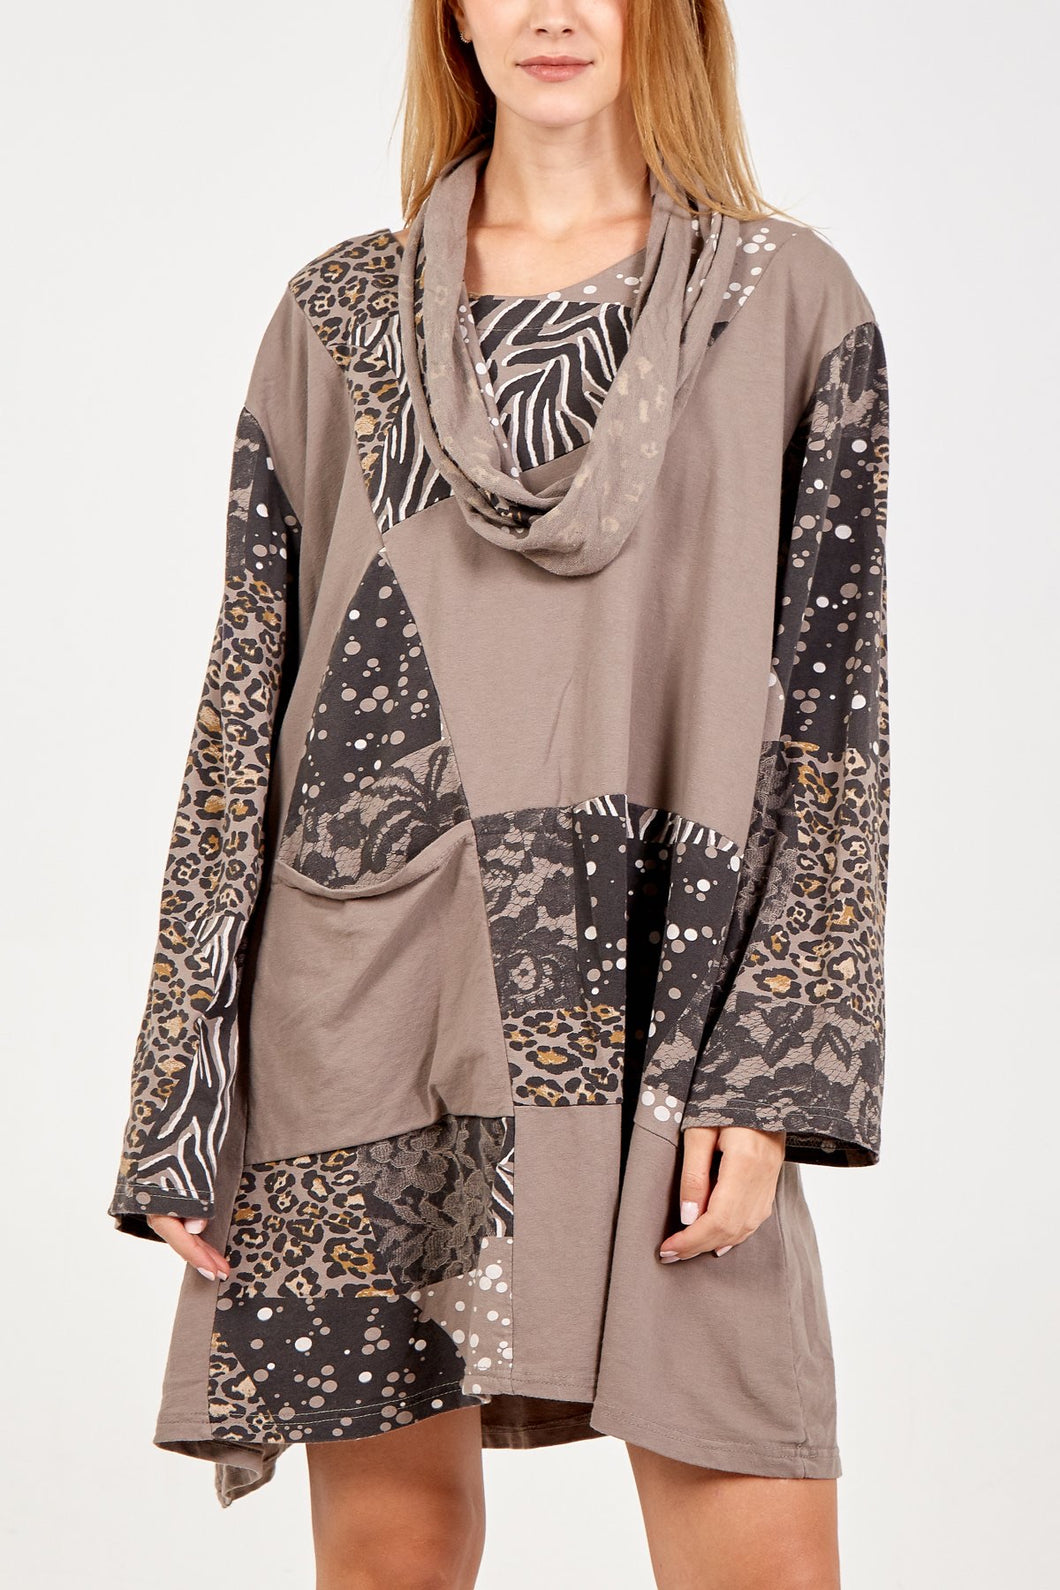 Sands Animal Print Tunic with scarf available in Mocha or Navy